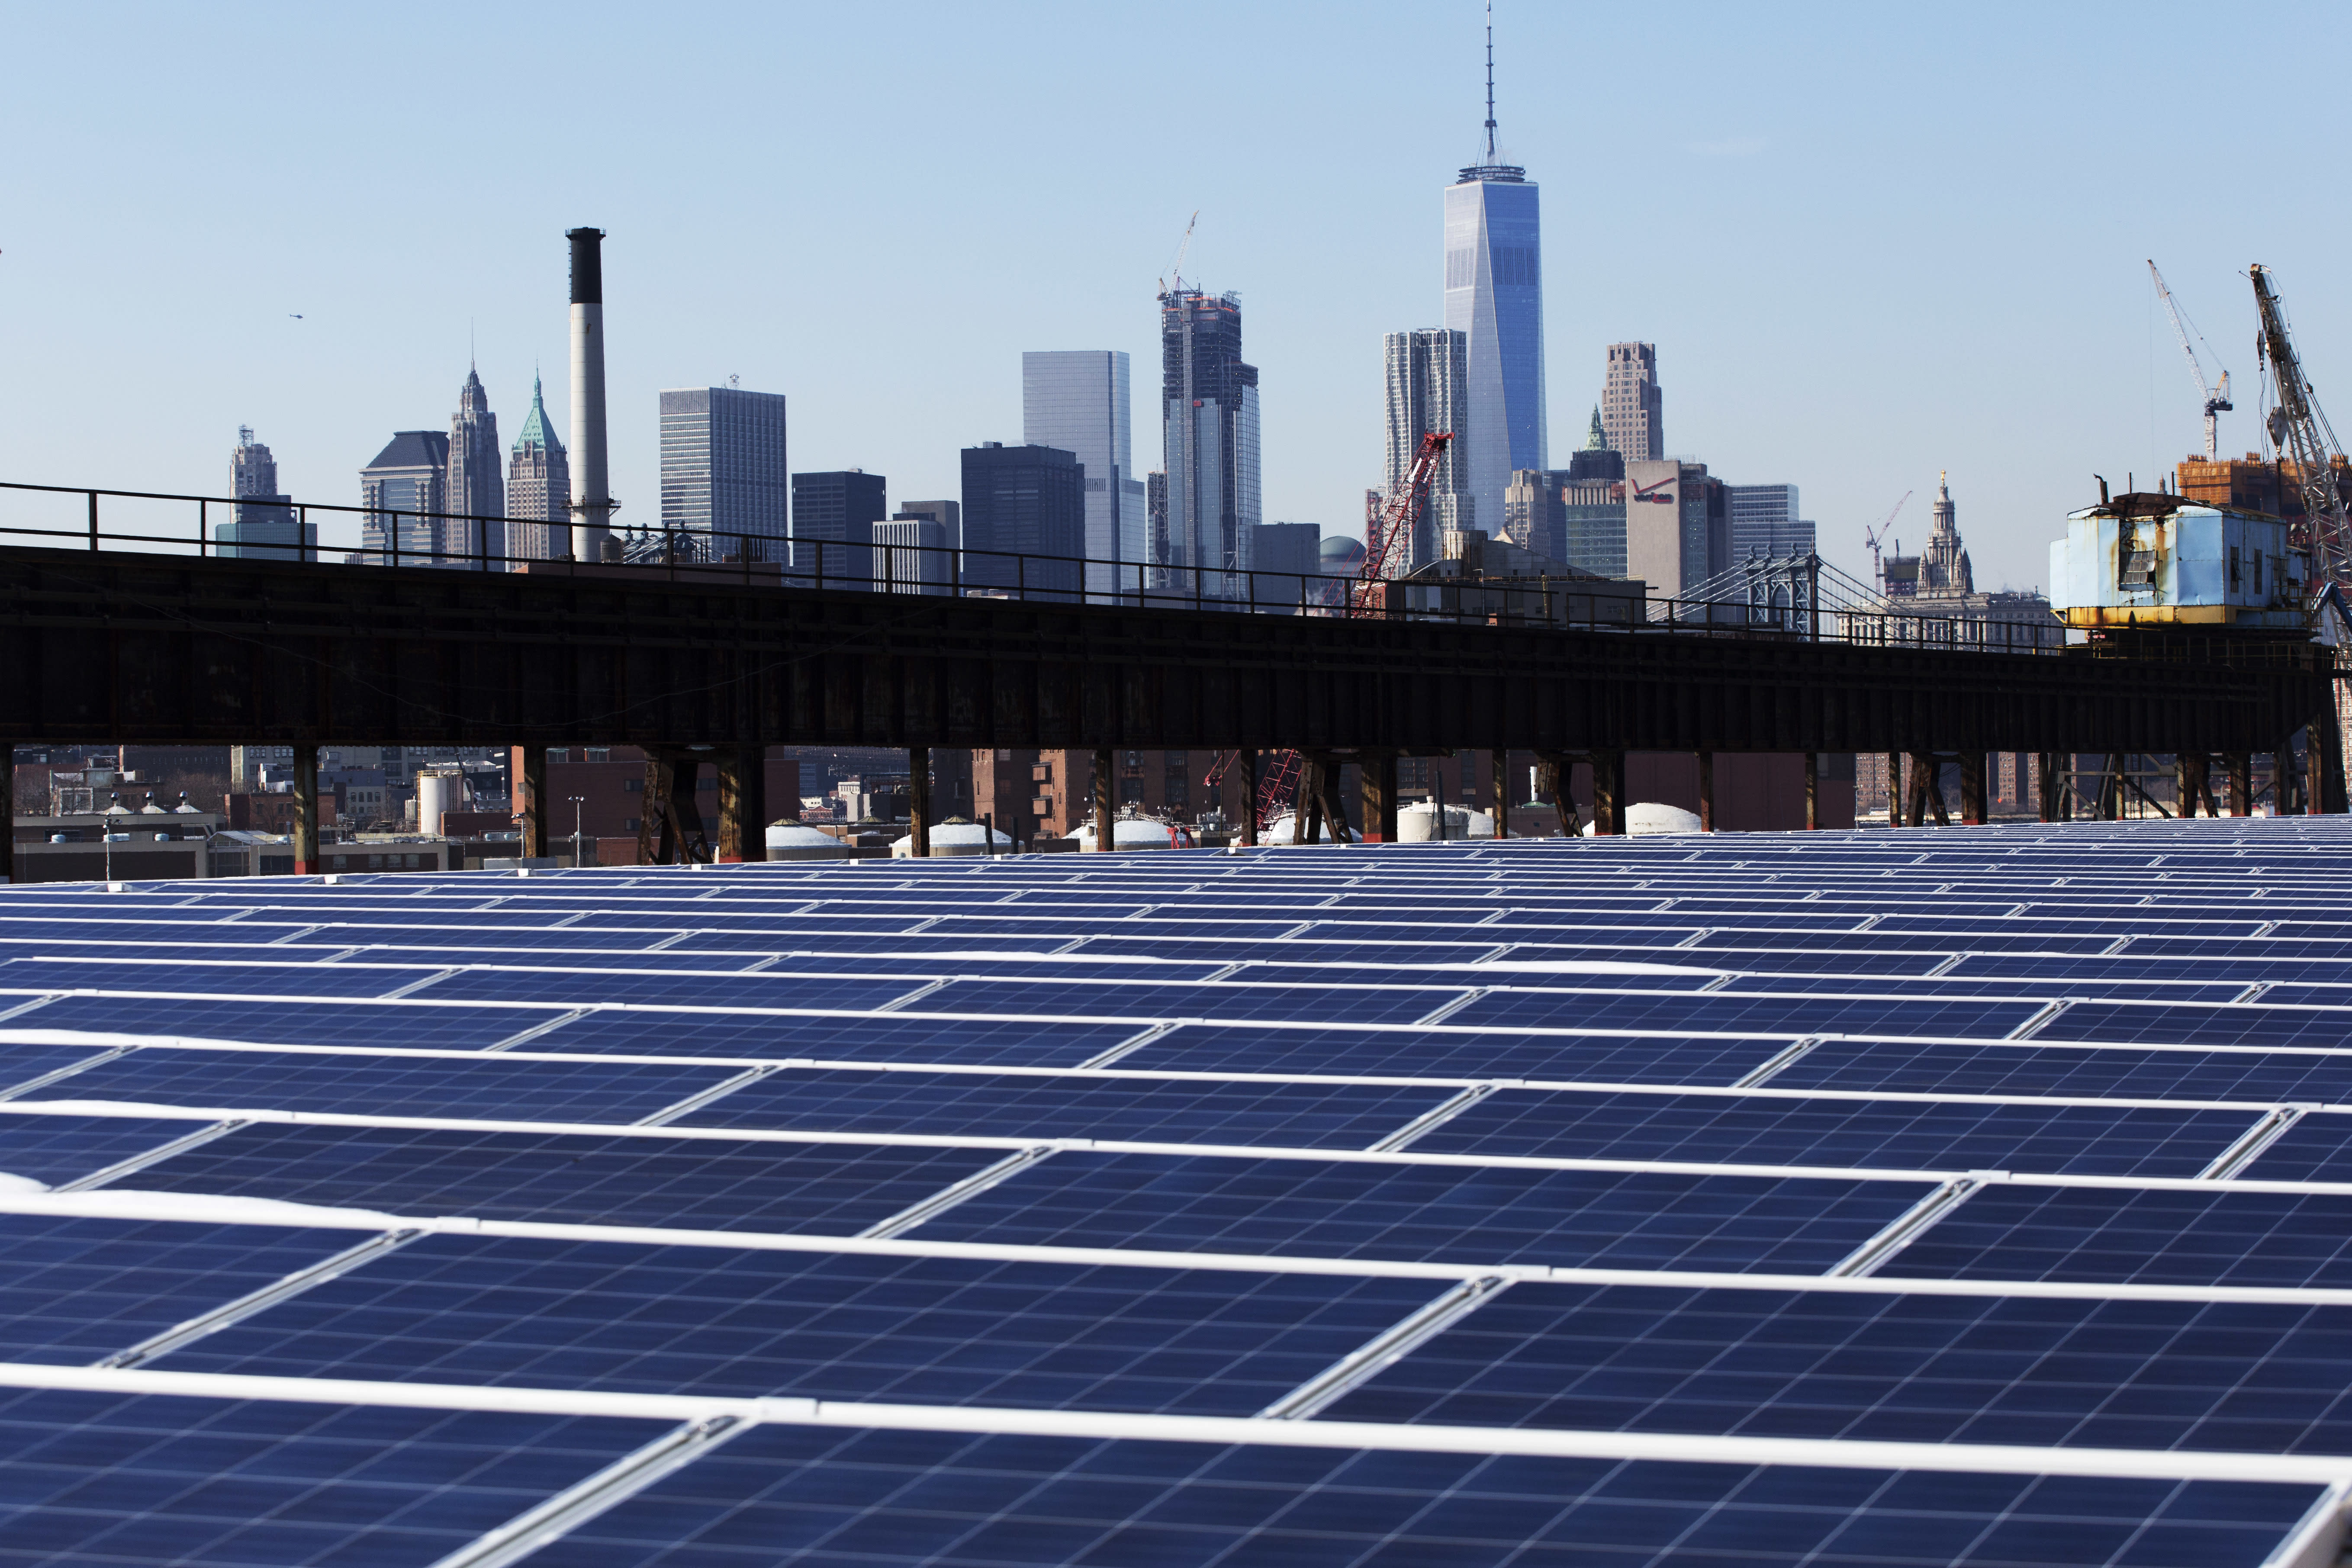 In this Feb. 14, 2017 photo, a rooftop is covered with solar panels at the Brooklyn Navy Yard in New York. (AP Photo/Mark Lennihan)